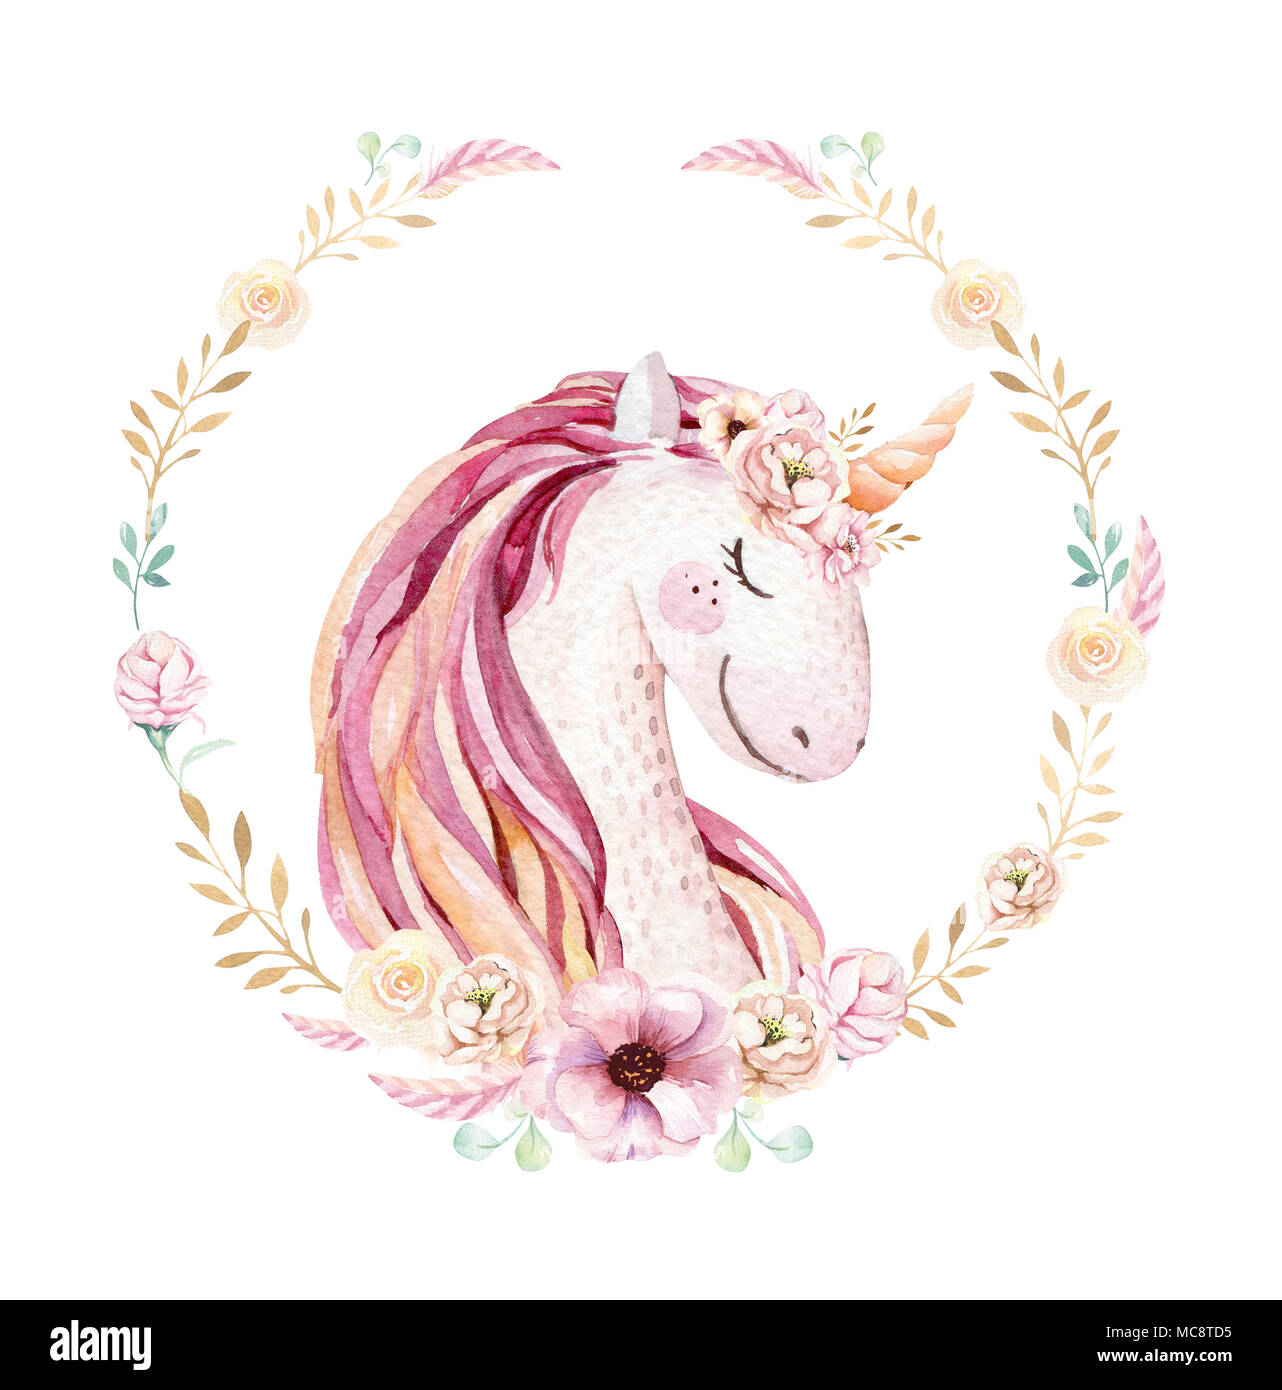 Isolated Cute Watercolor Unicorn Clipart With Flowers Nursery Unicorns Illustration Princess Rainbow Poster Trendy Pink Cartoon Pony Horse